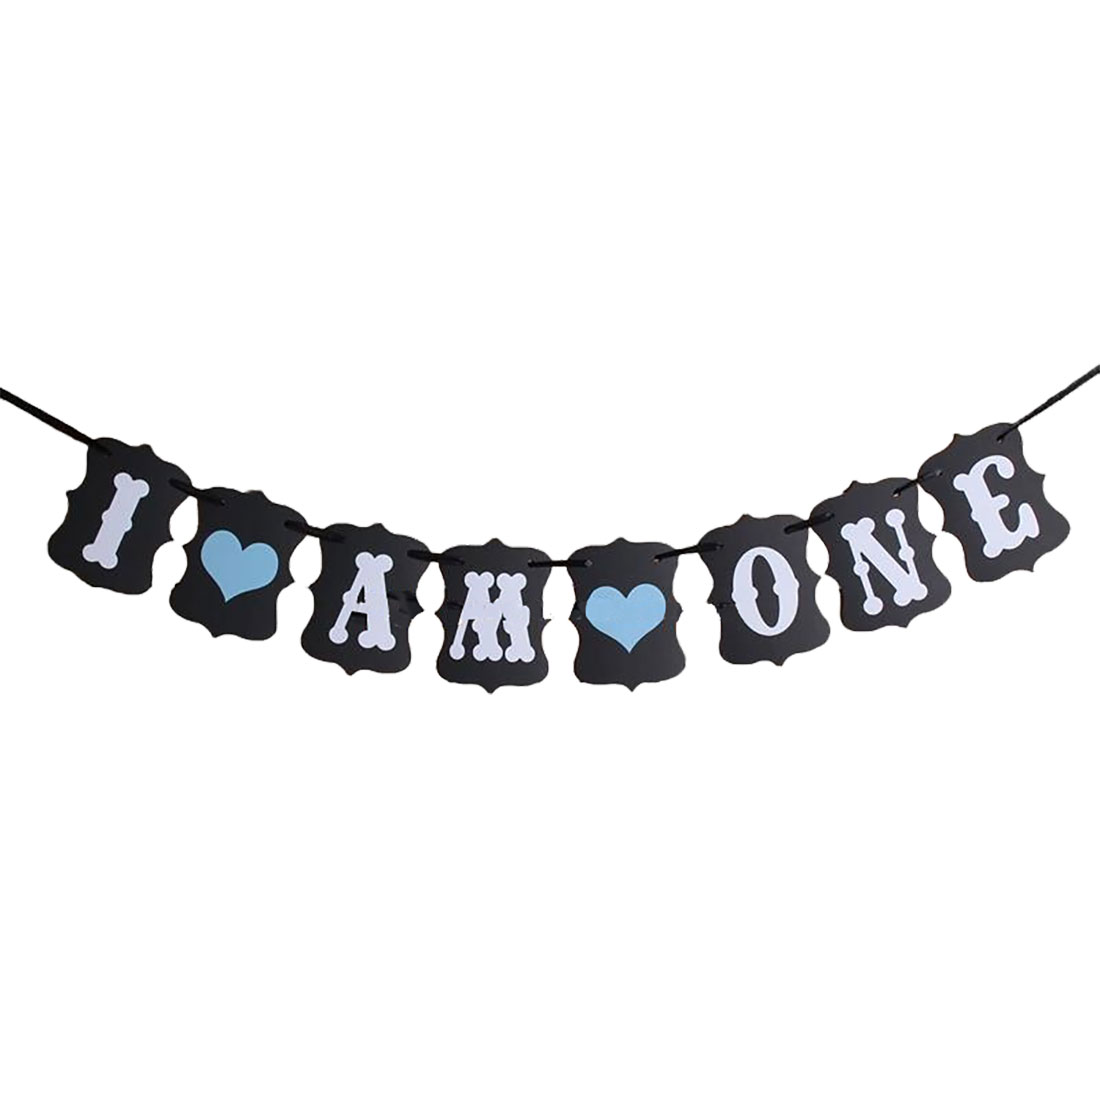 I AM ONE Letter Birthday Party Decoration Photo Prop Banner Black Set 8 in 1